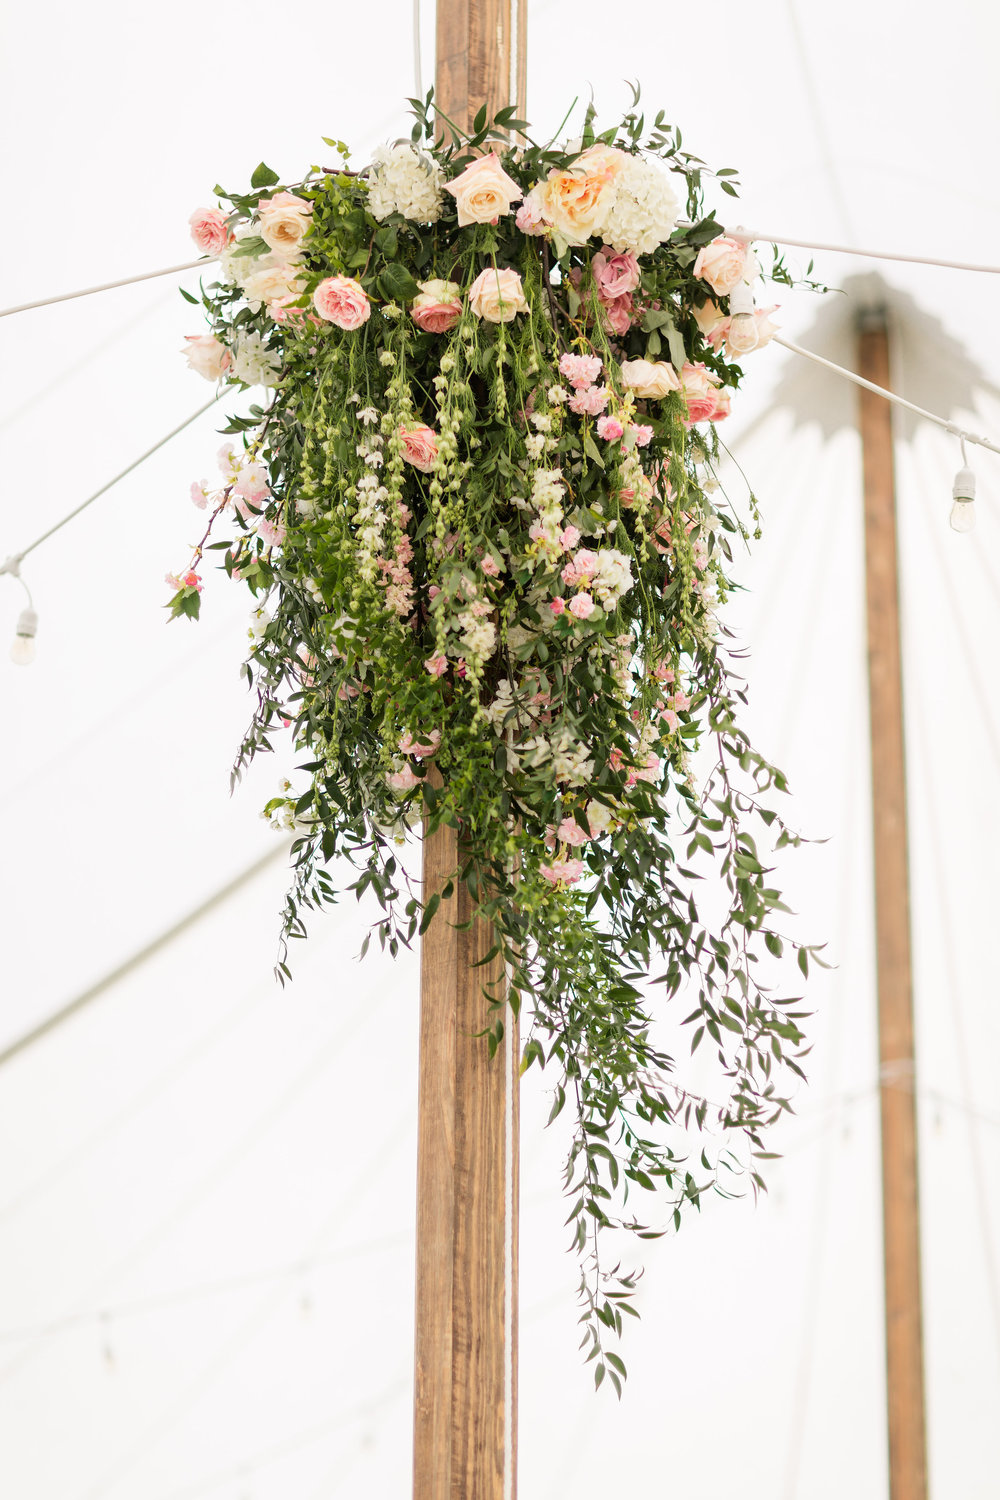 NJ Wedding, Tent Wedding, Hanging Chandelier, Hanging Decor, Greenery Wedding, Blush Wedding, A Garden Party